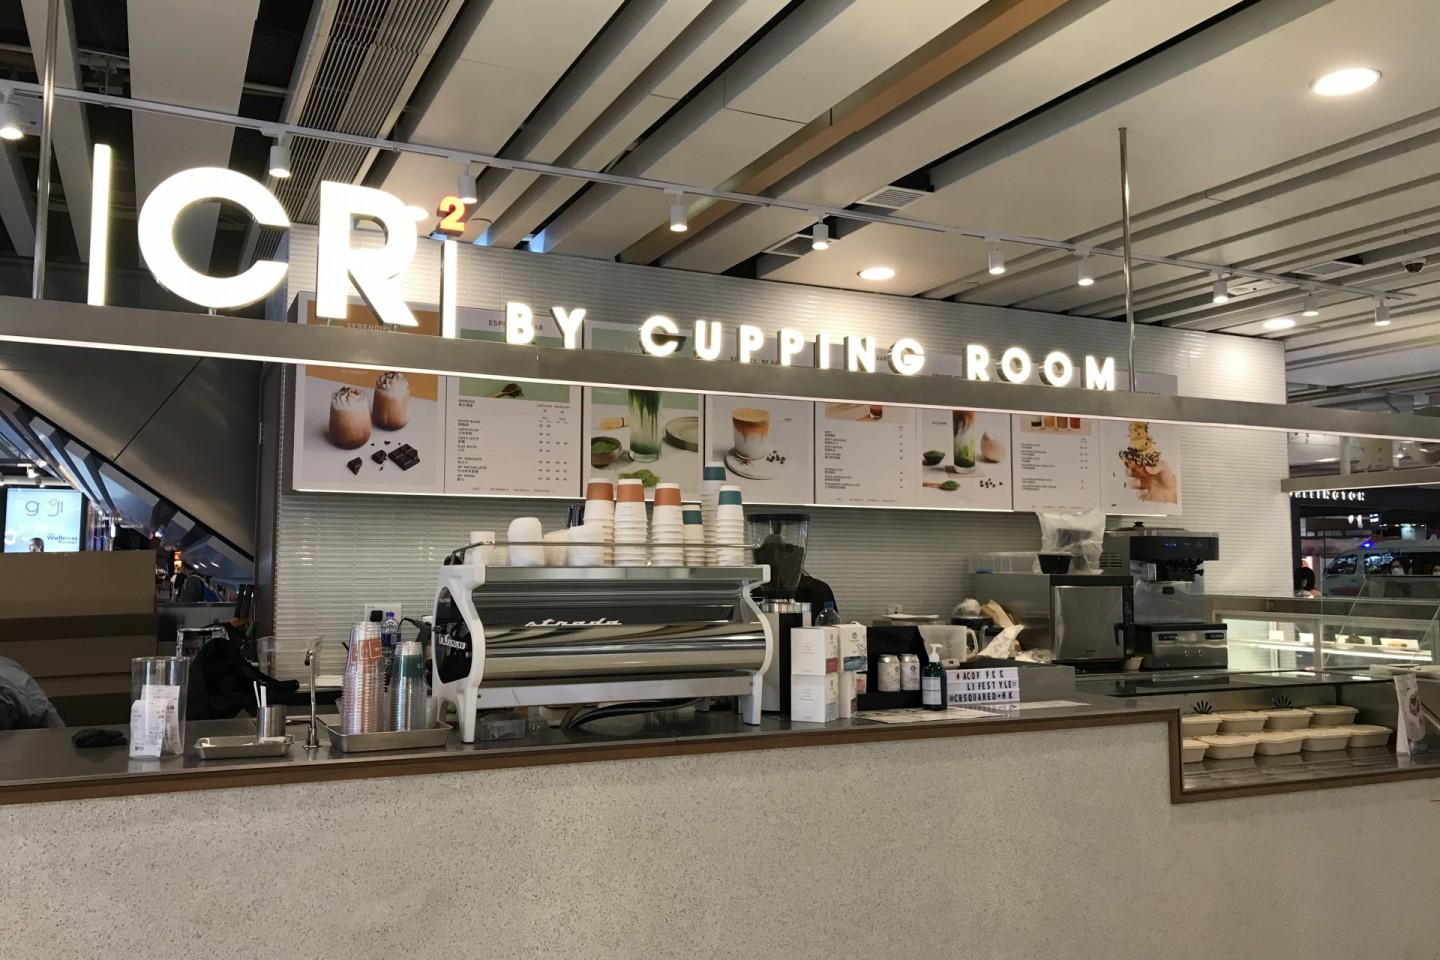 CR² by Cupping Room